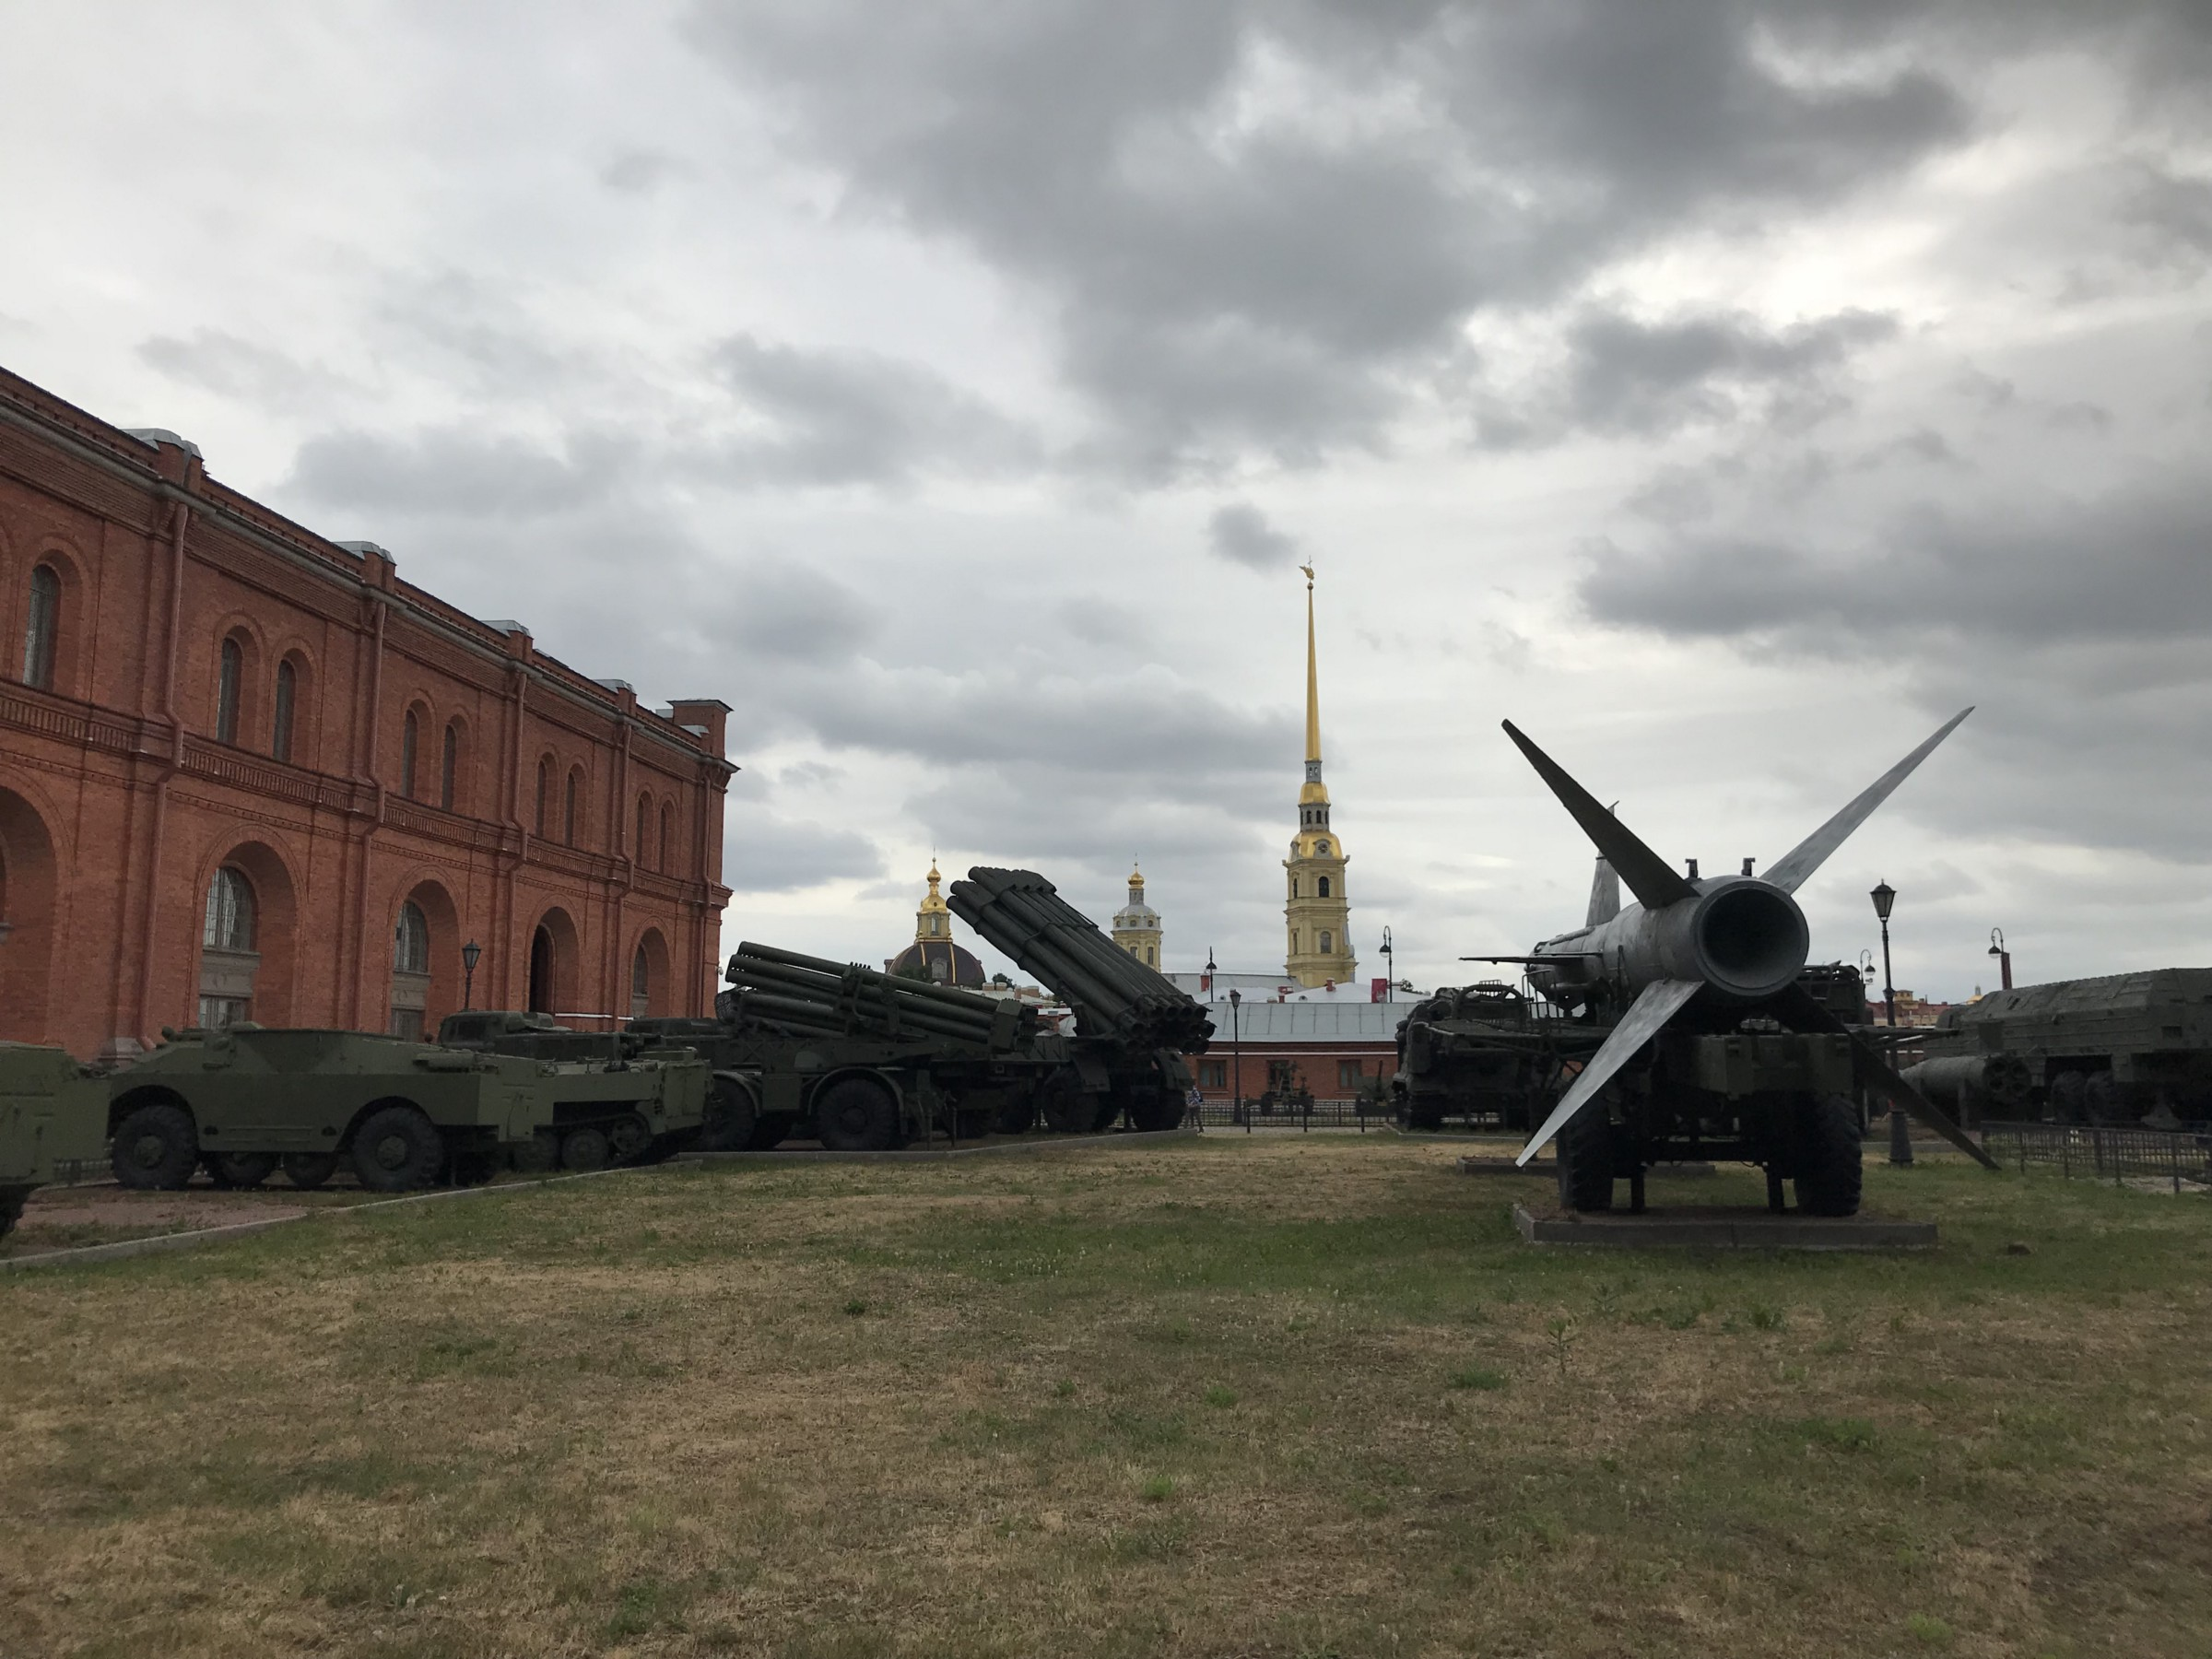 The Museum of Artillery (red) includes an outdoor display of historic and modern Russian artillery.